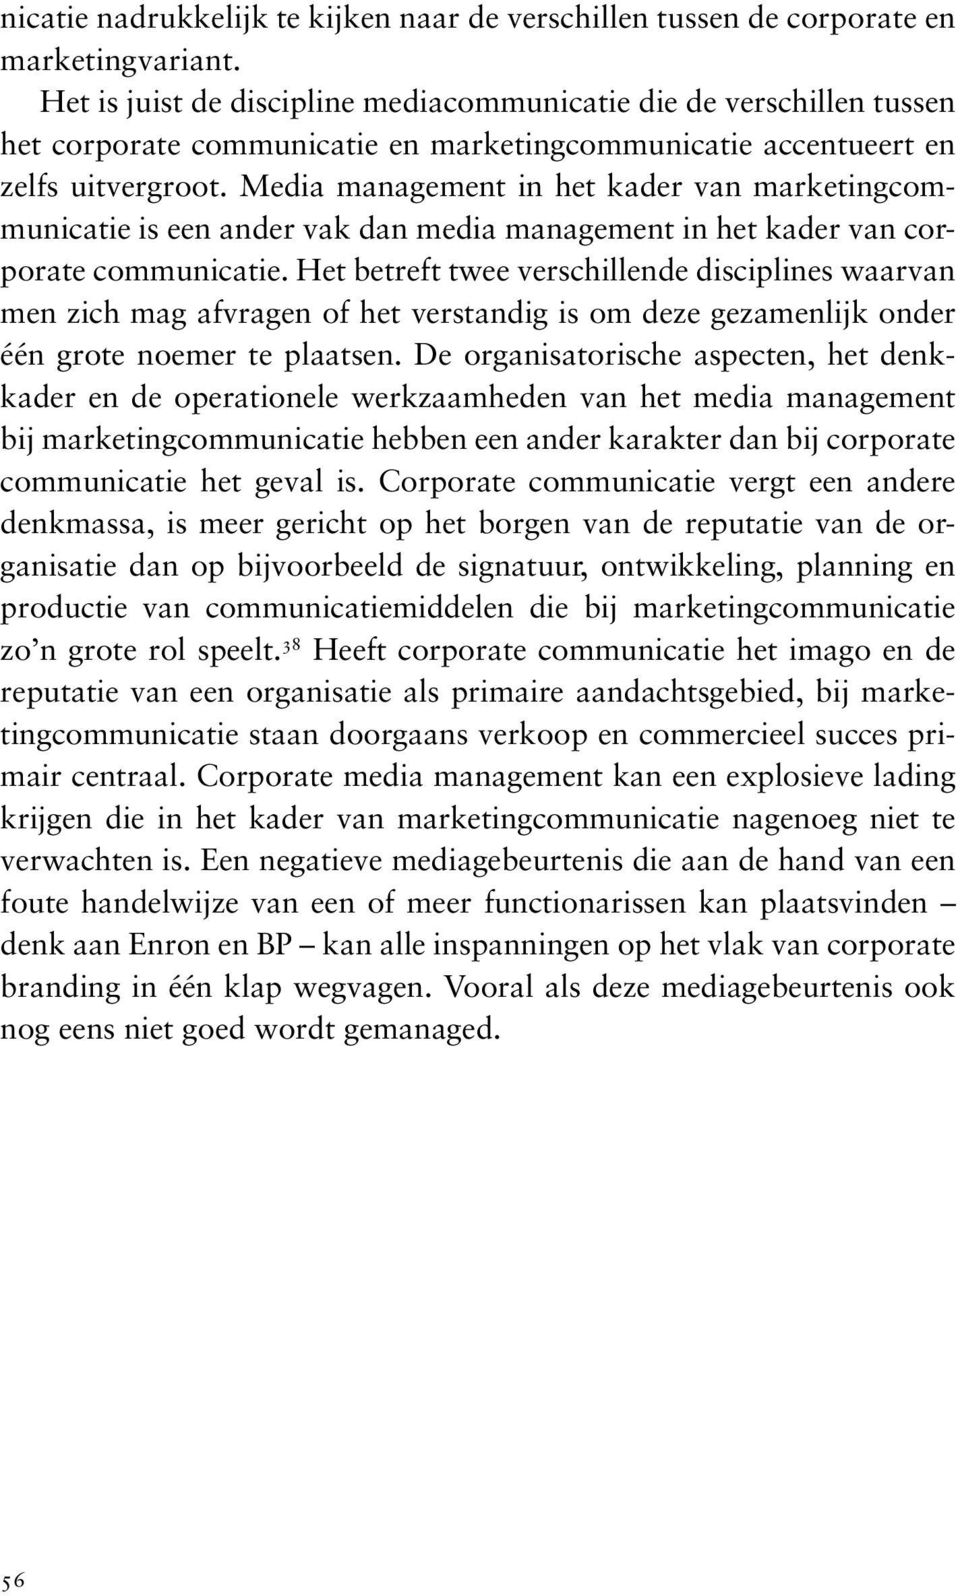 Media management in het kader van marketing is een ander vak dan media management in het kader van corporate.